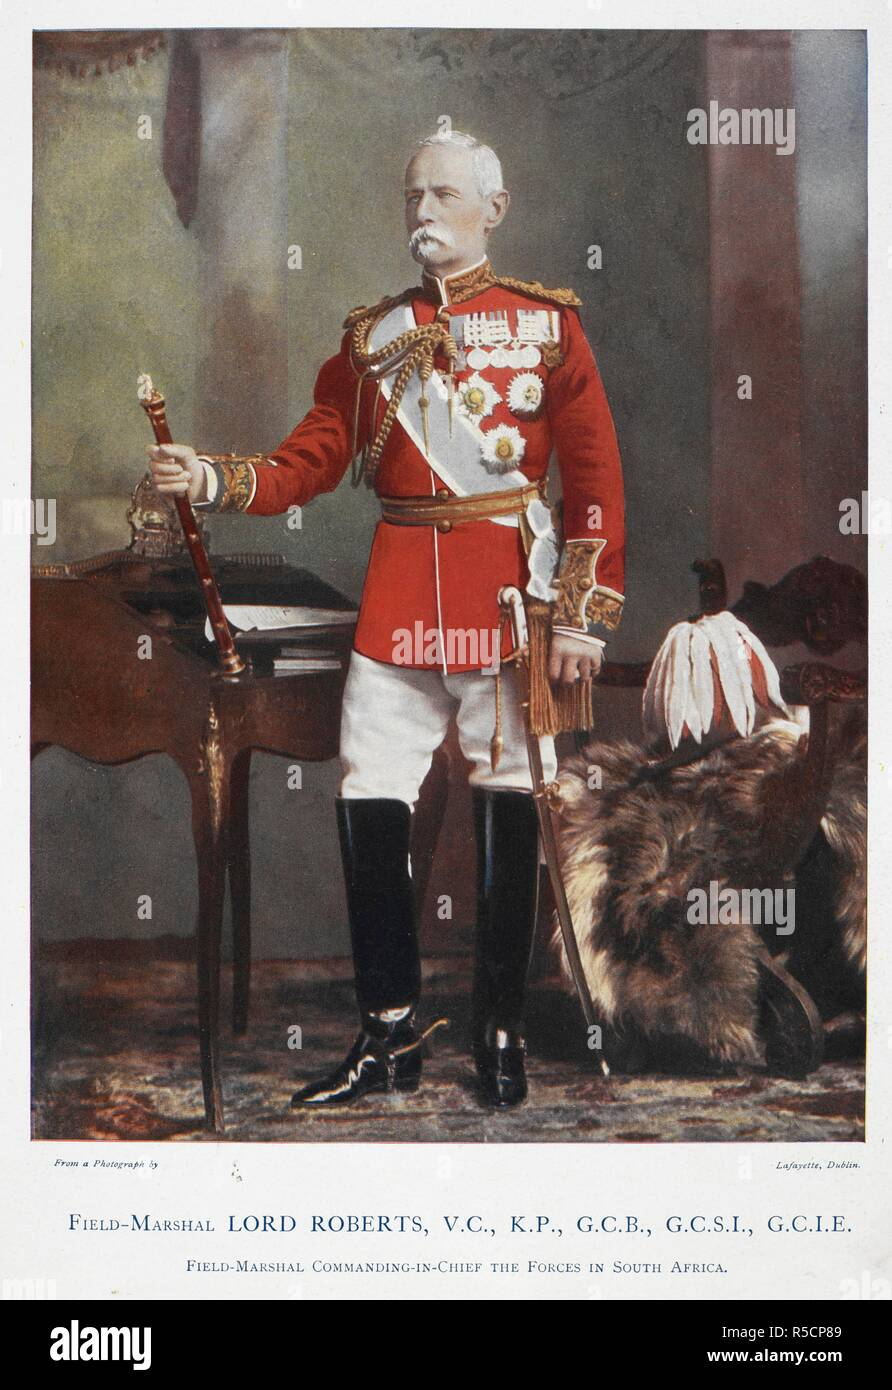 Field-Marshal Lord Frederick Sleigh Roberts, VC, KP, GCB, GCSI, GCIE (1832-1914). Field-Marshal Commanding-in-Chief the Forces in South Africa. Celebrities of the Army. [Coloured portraits, with short biographical notices.]. George Newnes: London, 1900. Source: 1766.a.3, page 17. Language: English. Author: Robinson, Charles Napier. Lafayette. - Stock Image